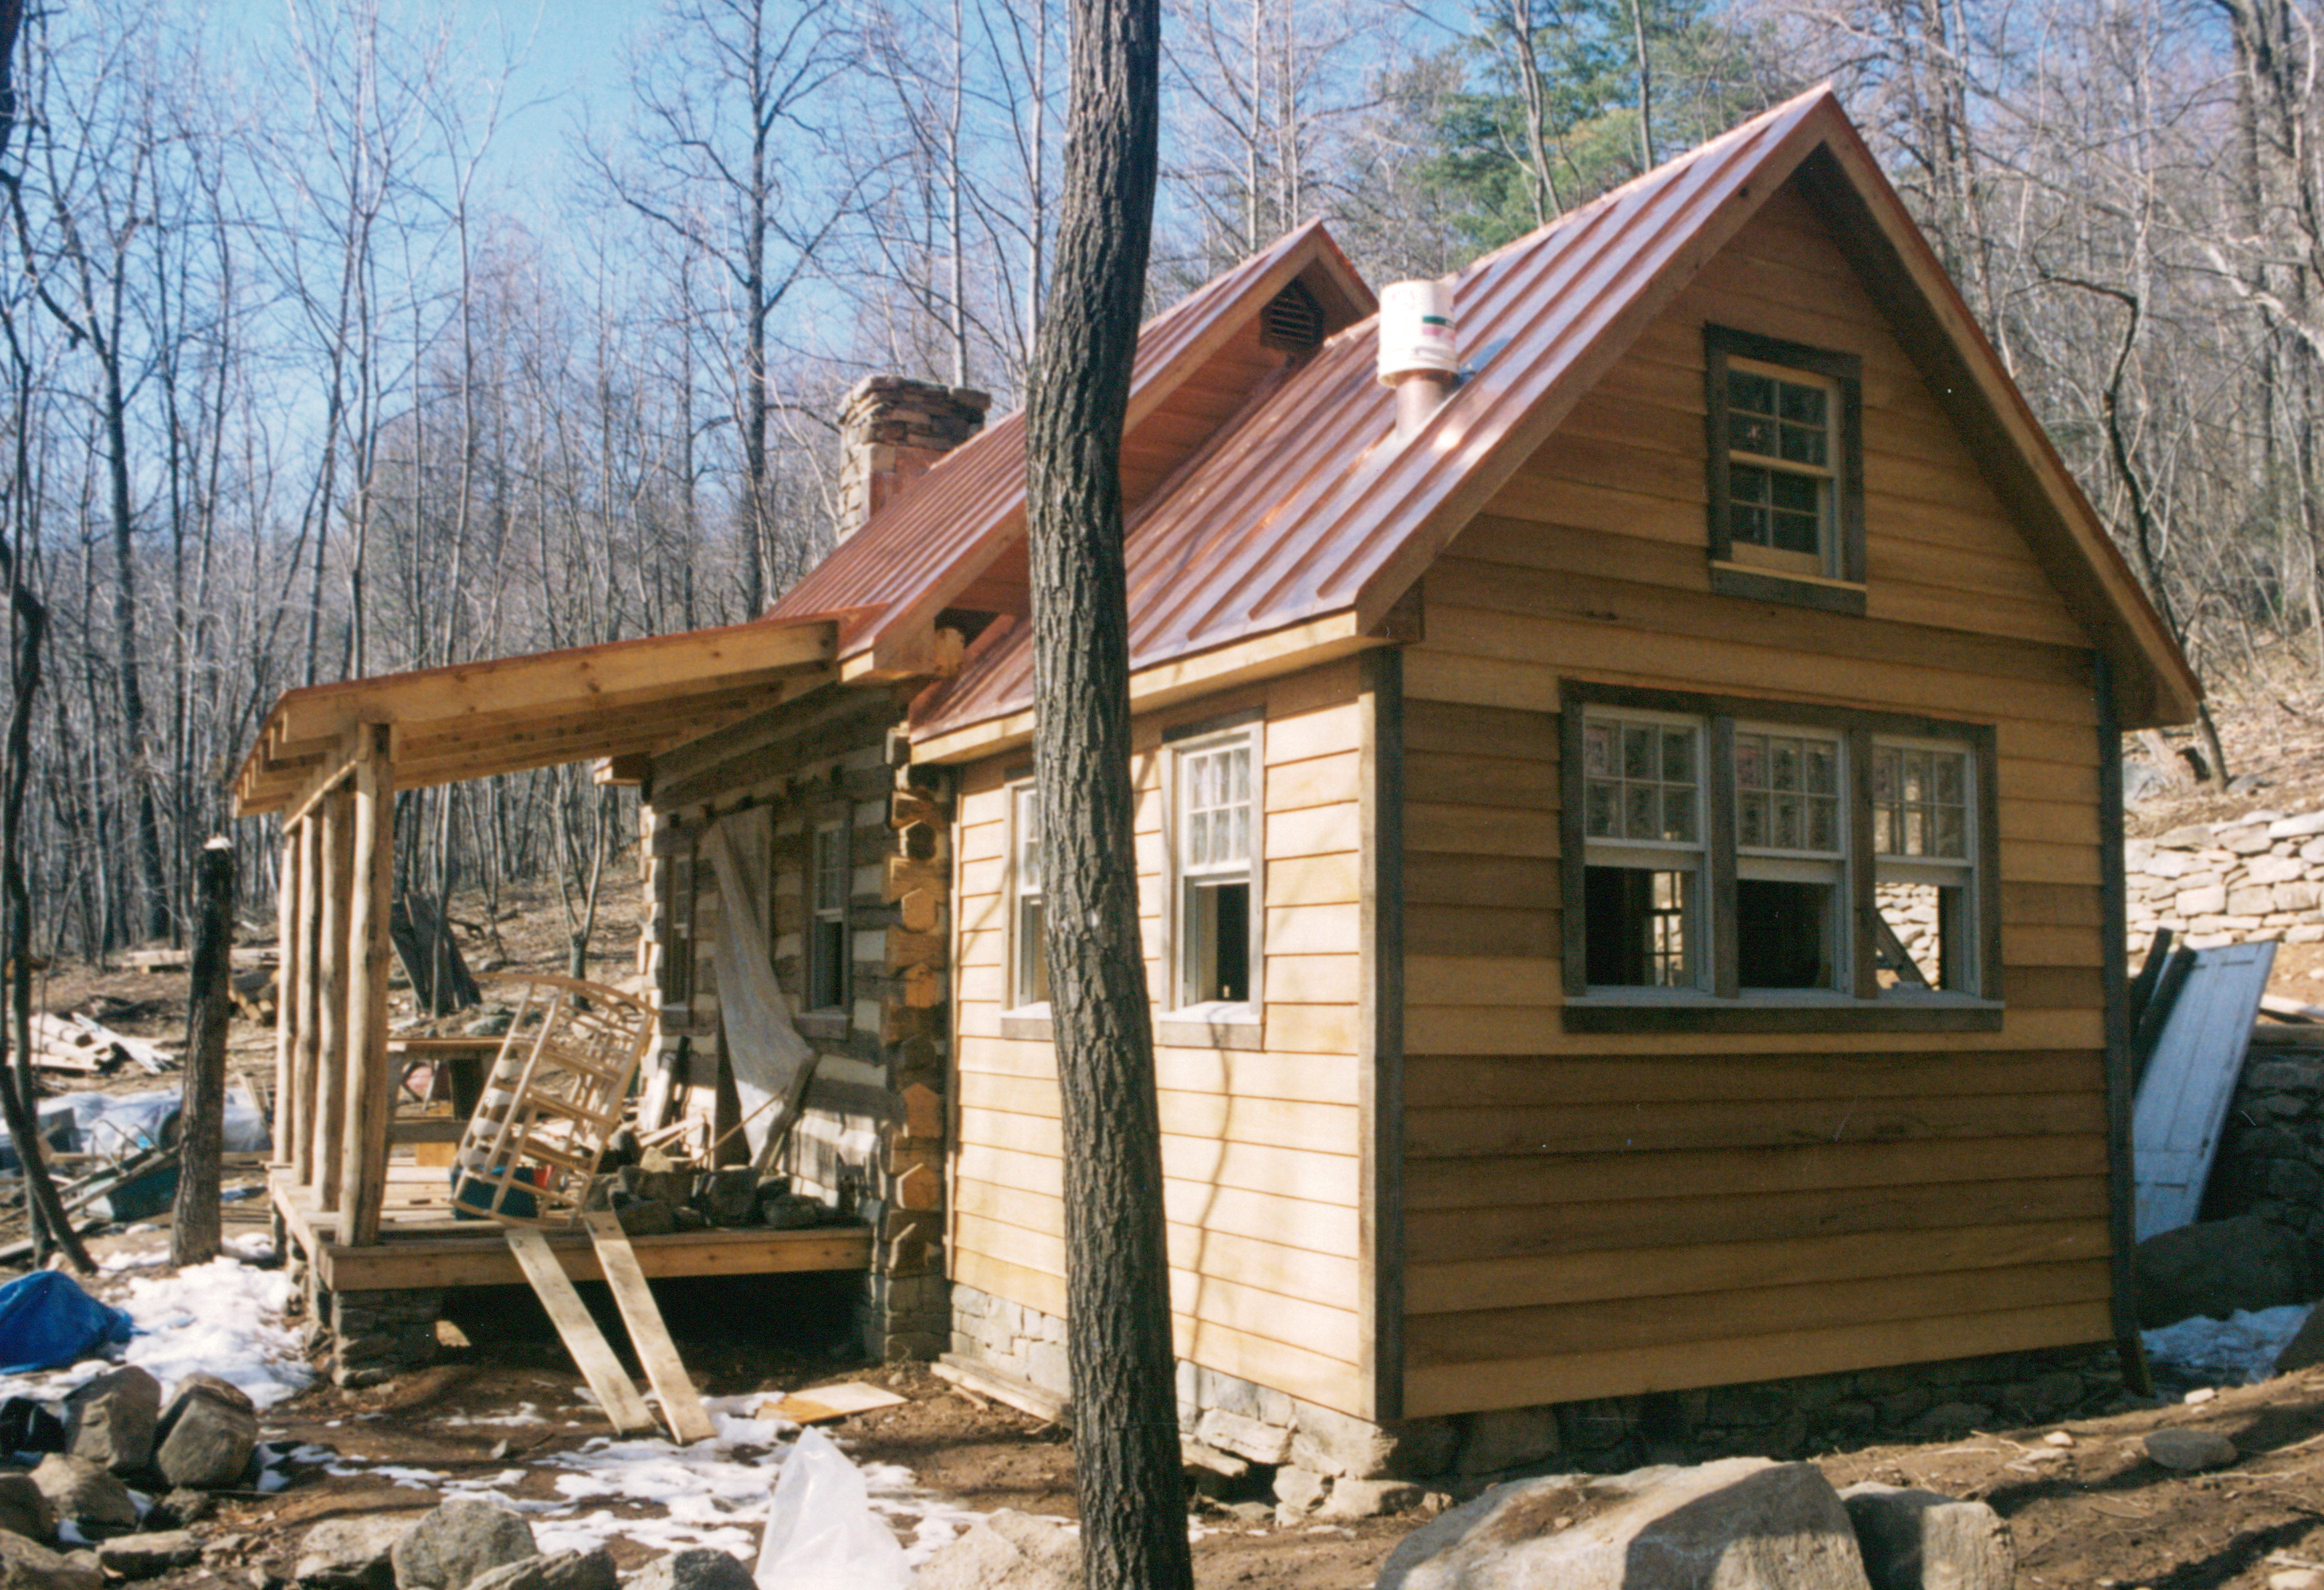 Best Kitchen Gallery: Part Four Of… Building A Rustic Cabin Handmade Houses With Noah of Small Cabins And Cottages on rachelxblog.com